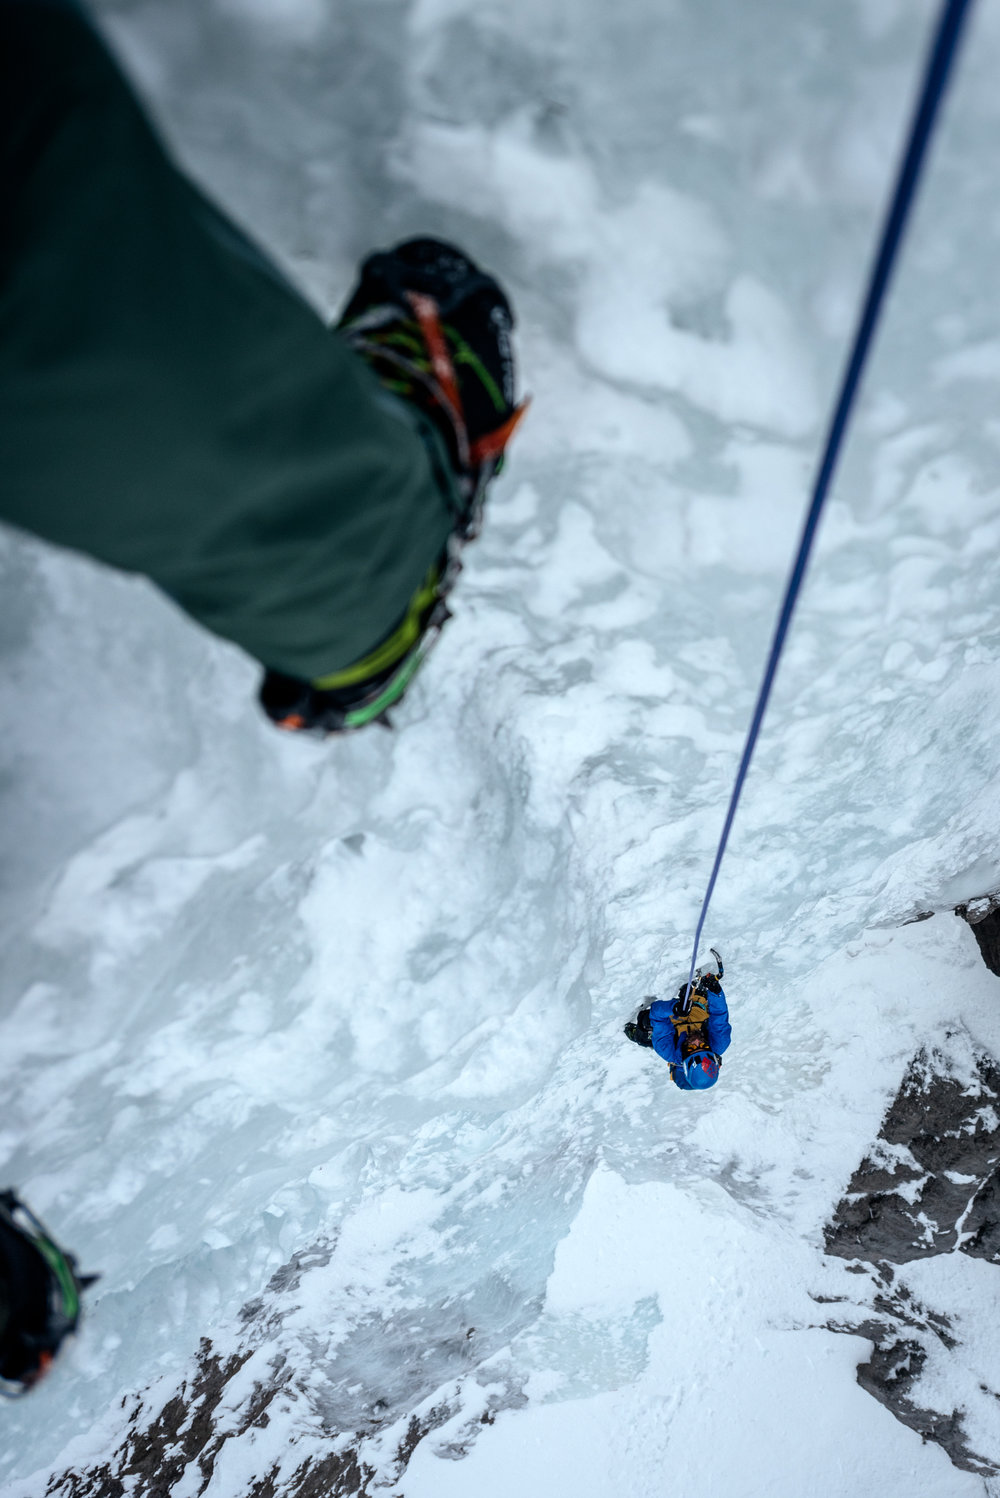 Chris catches a bird's eye view of Christian on Pitch 3.